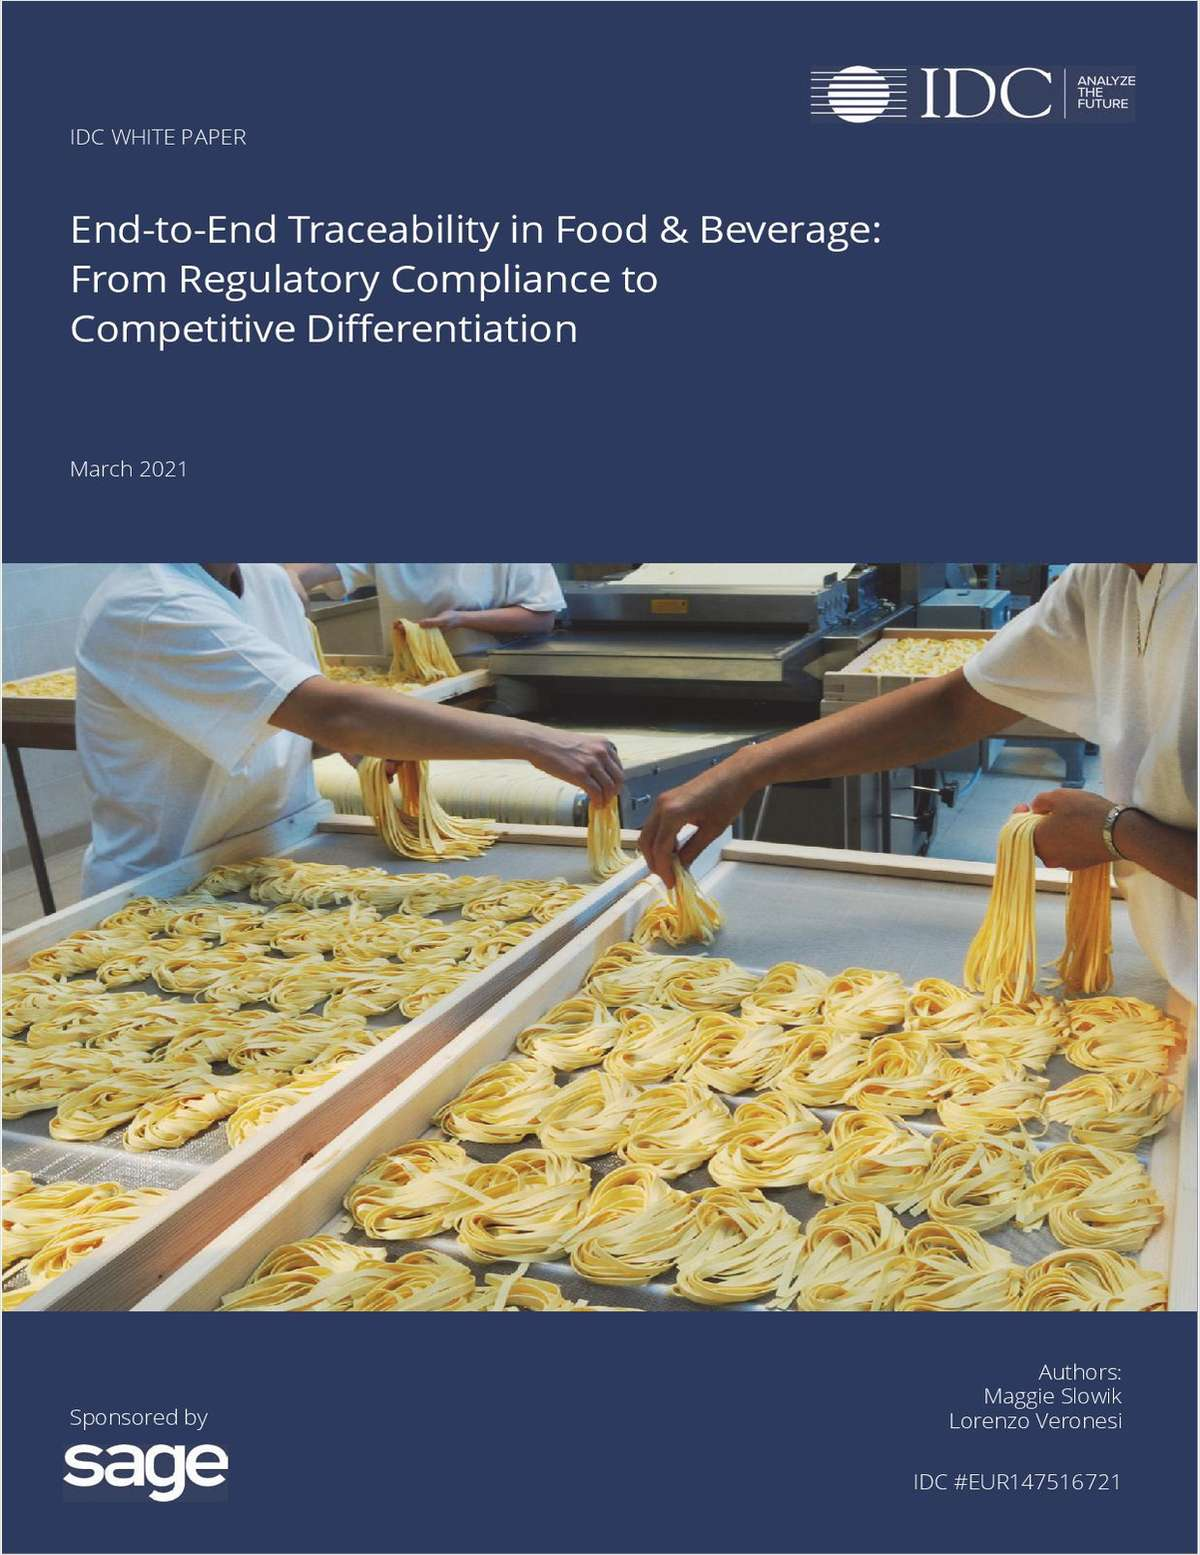 End to End Traceability in Food & Beverage From Regulatory Compliance to Competitive Differentiation